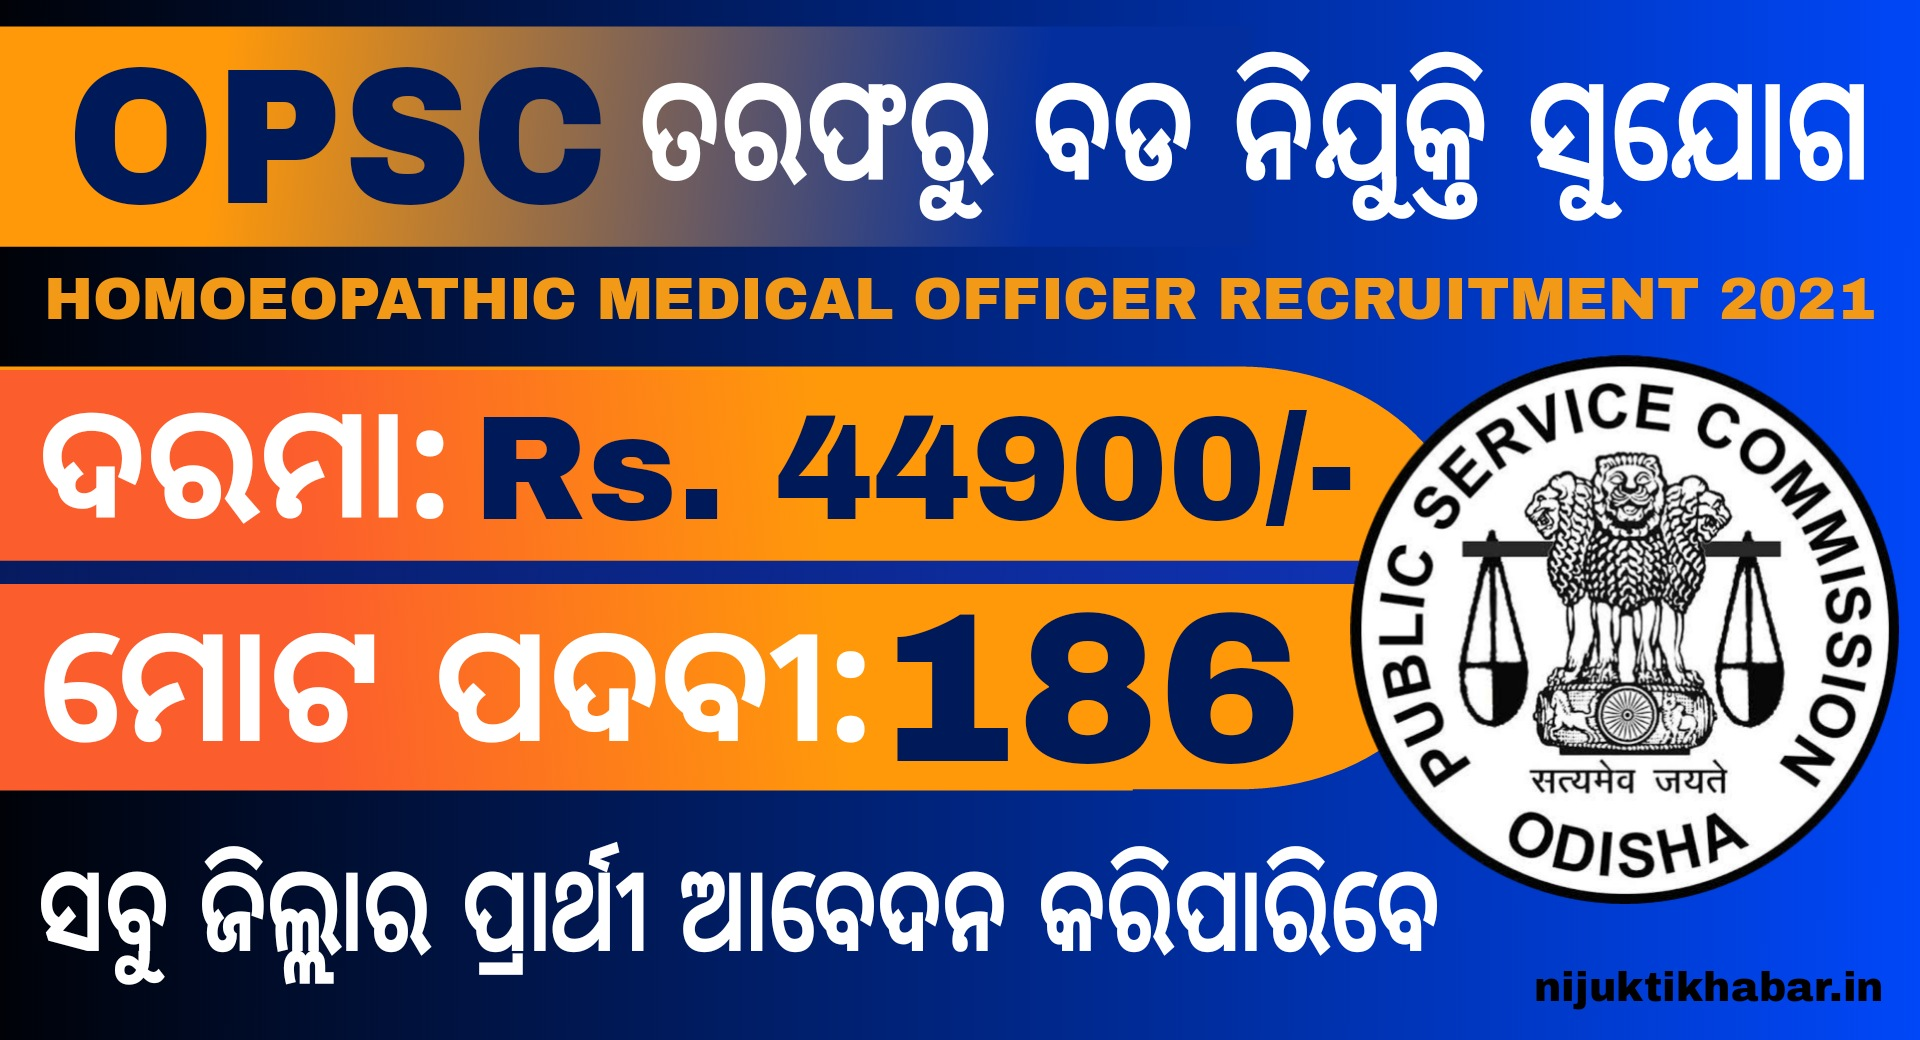 OPSC Homoeopathic Medical Officer Recruitment 2021- Jobs in Odisha